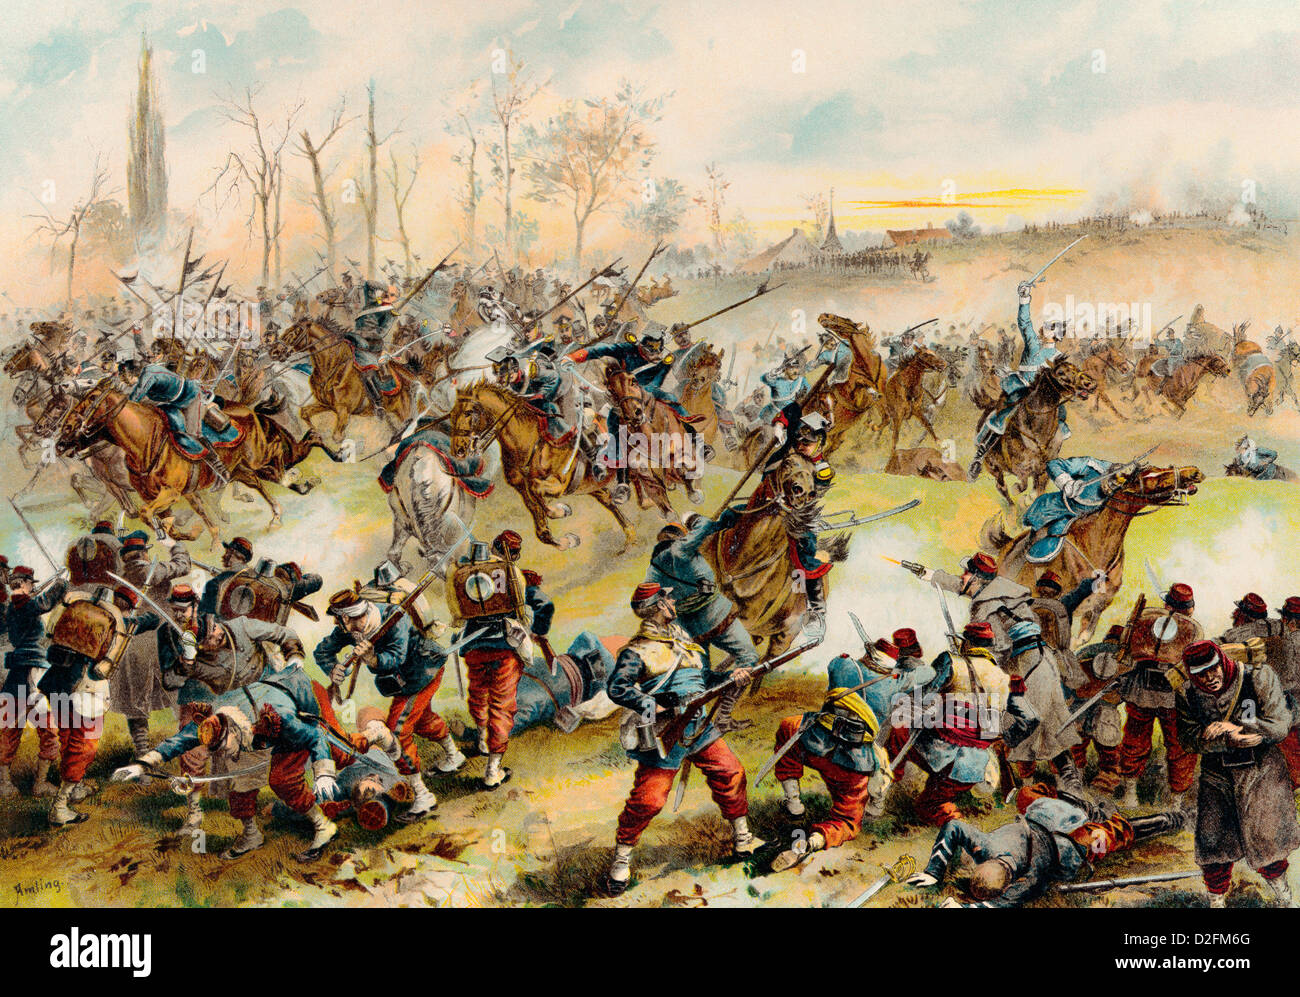 franco prussian war The franco-prussian war would have an enormous effect on the immediate and distant fate of europe the most obvious of these effects being the emergence of the german empire as one of the most, if not the , most powerful nation on the continent.